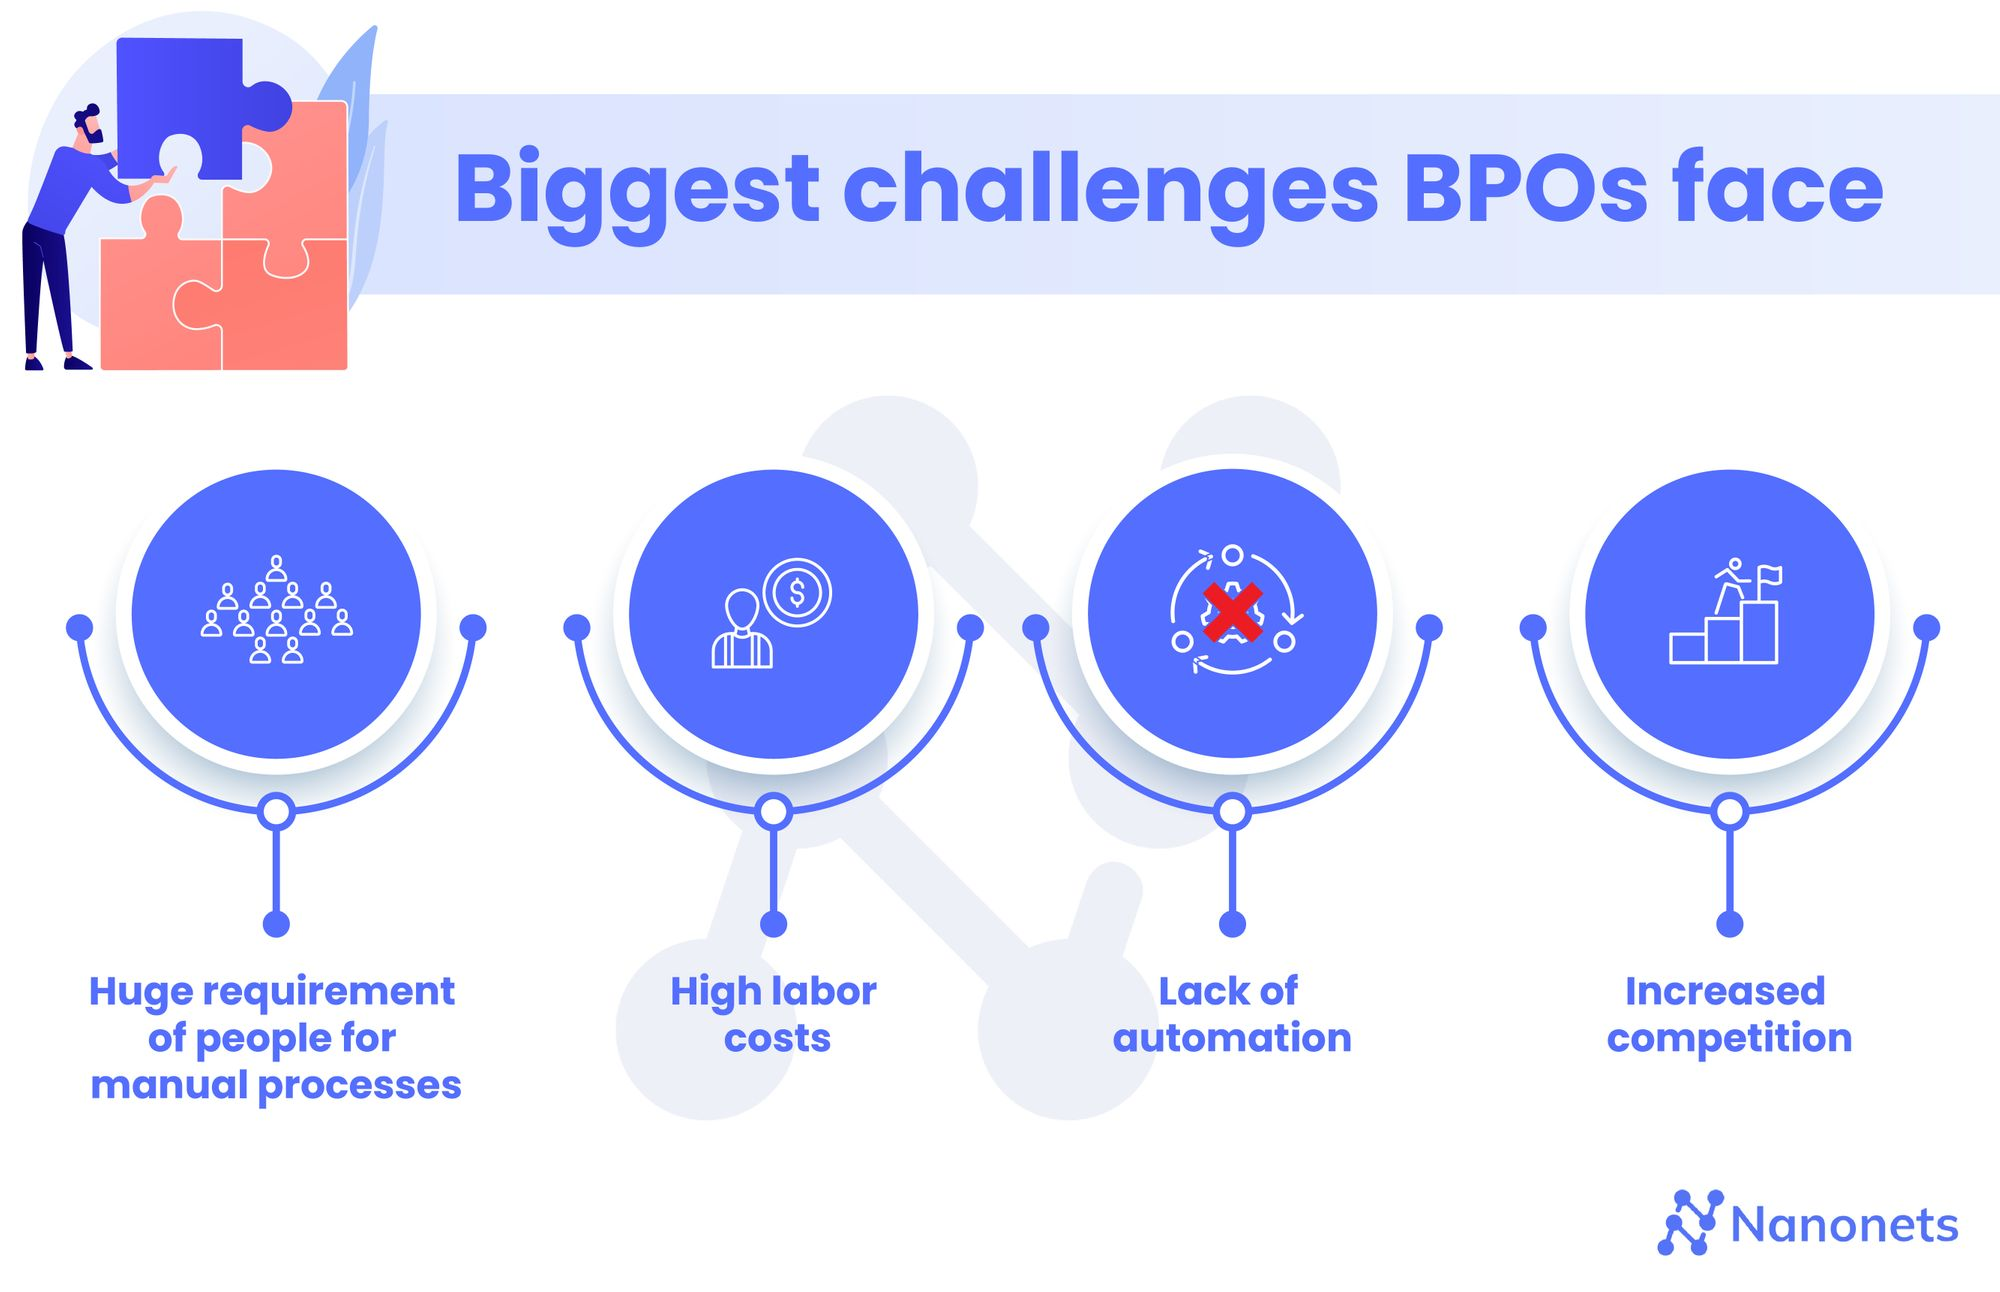 Challenges for Business Process Outsourcing (BPO) Industry